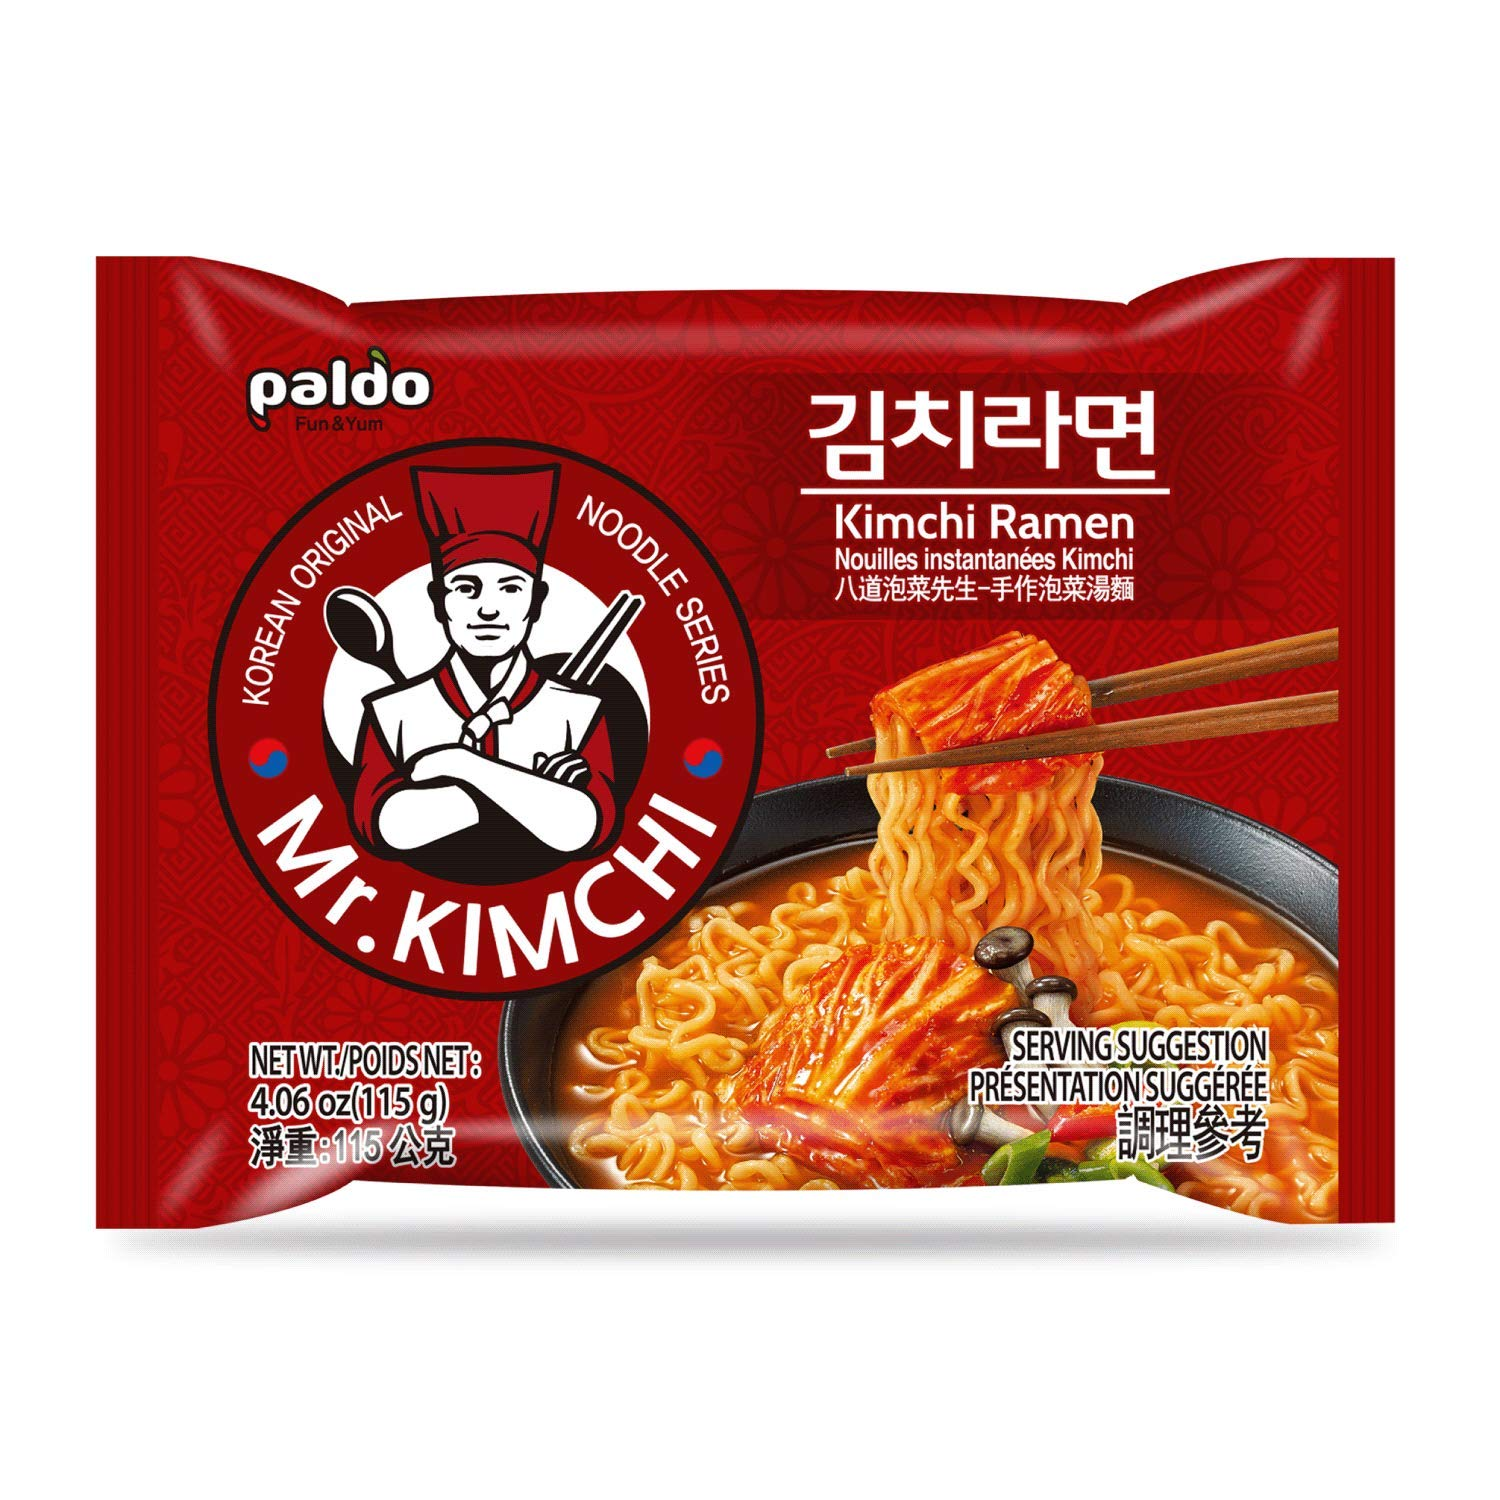 Paldo Fun Yum Super beauty product restock Max 72% OFF quality top Kimchi Ramen Instant Noodles Soup with B